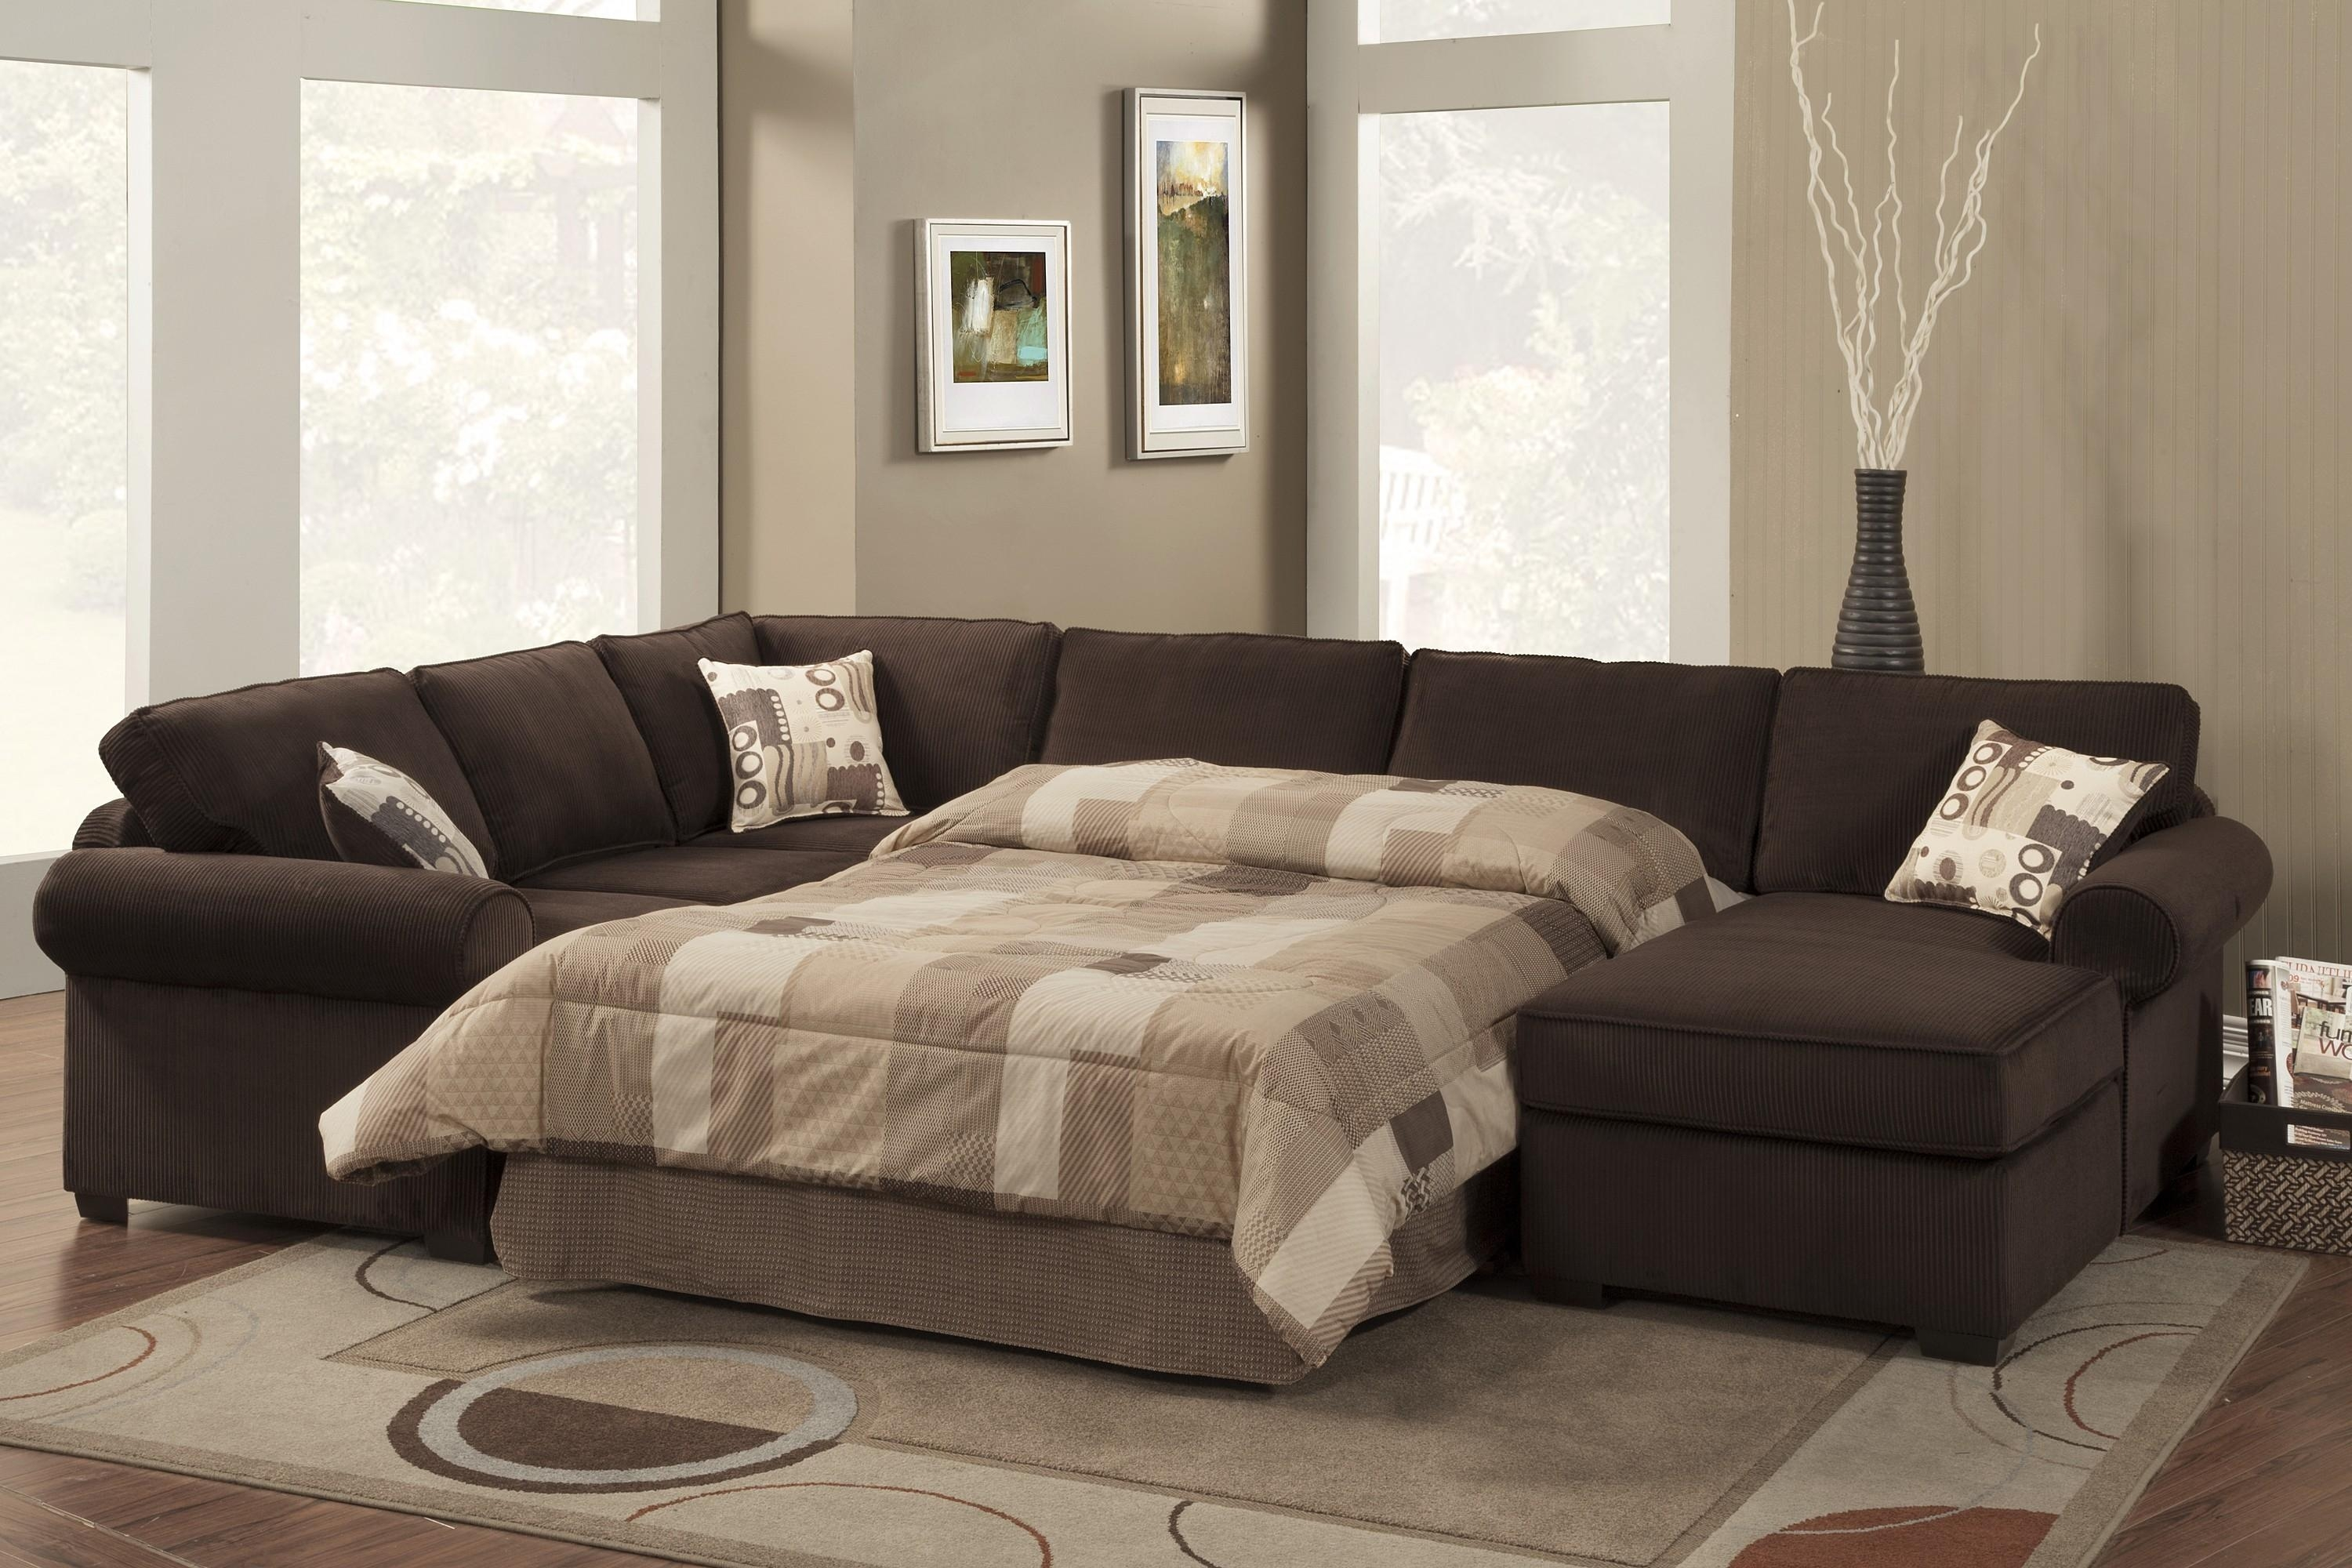 Sofa: Sectional Sleeper | Tufted Sectional Sofa | Tufted Sectional With Tufted Sectional Sofa Chaise (Image 13 of 20)